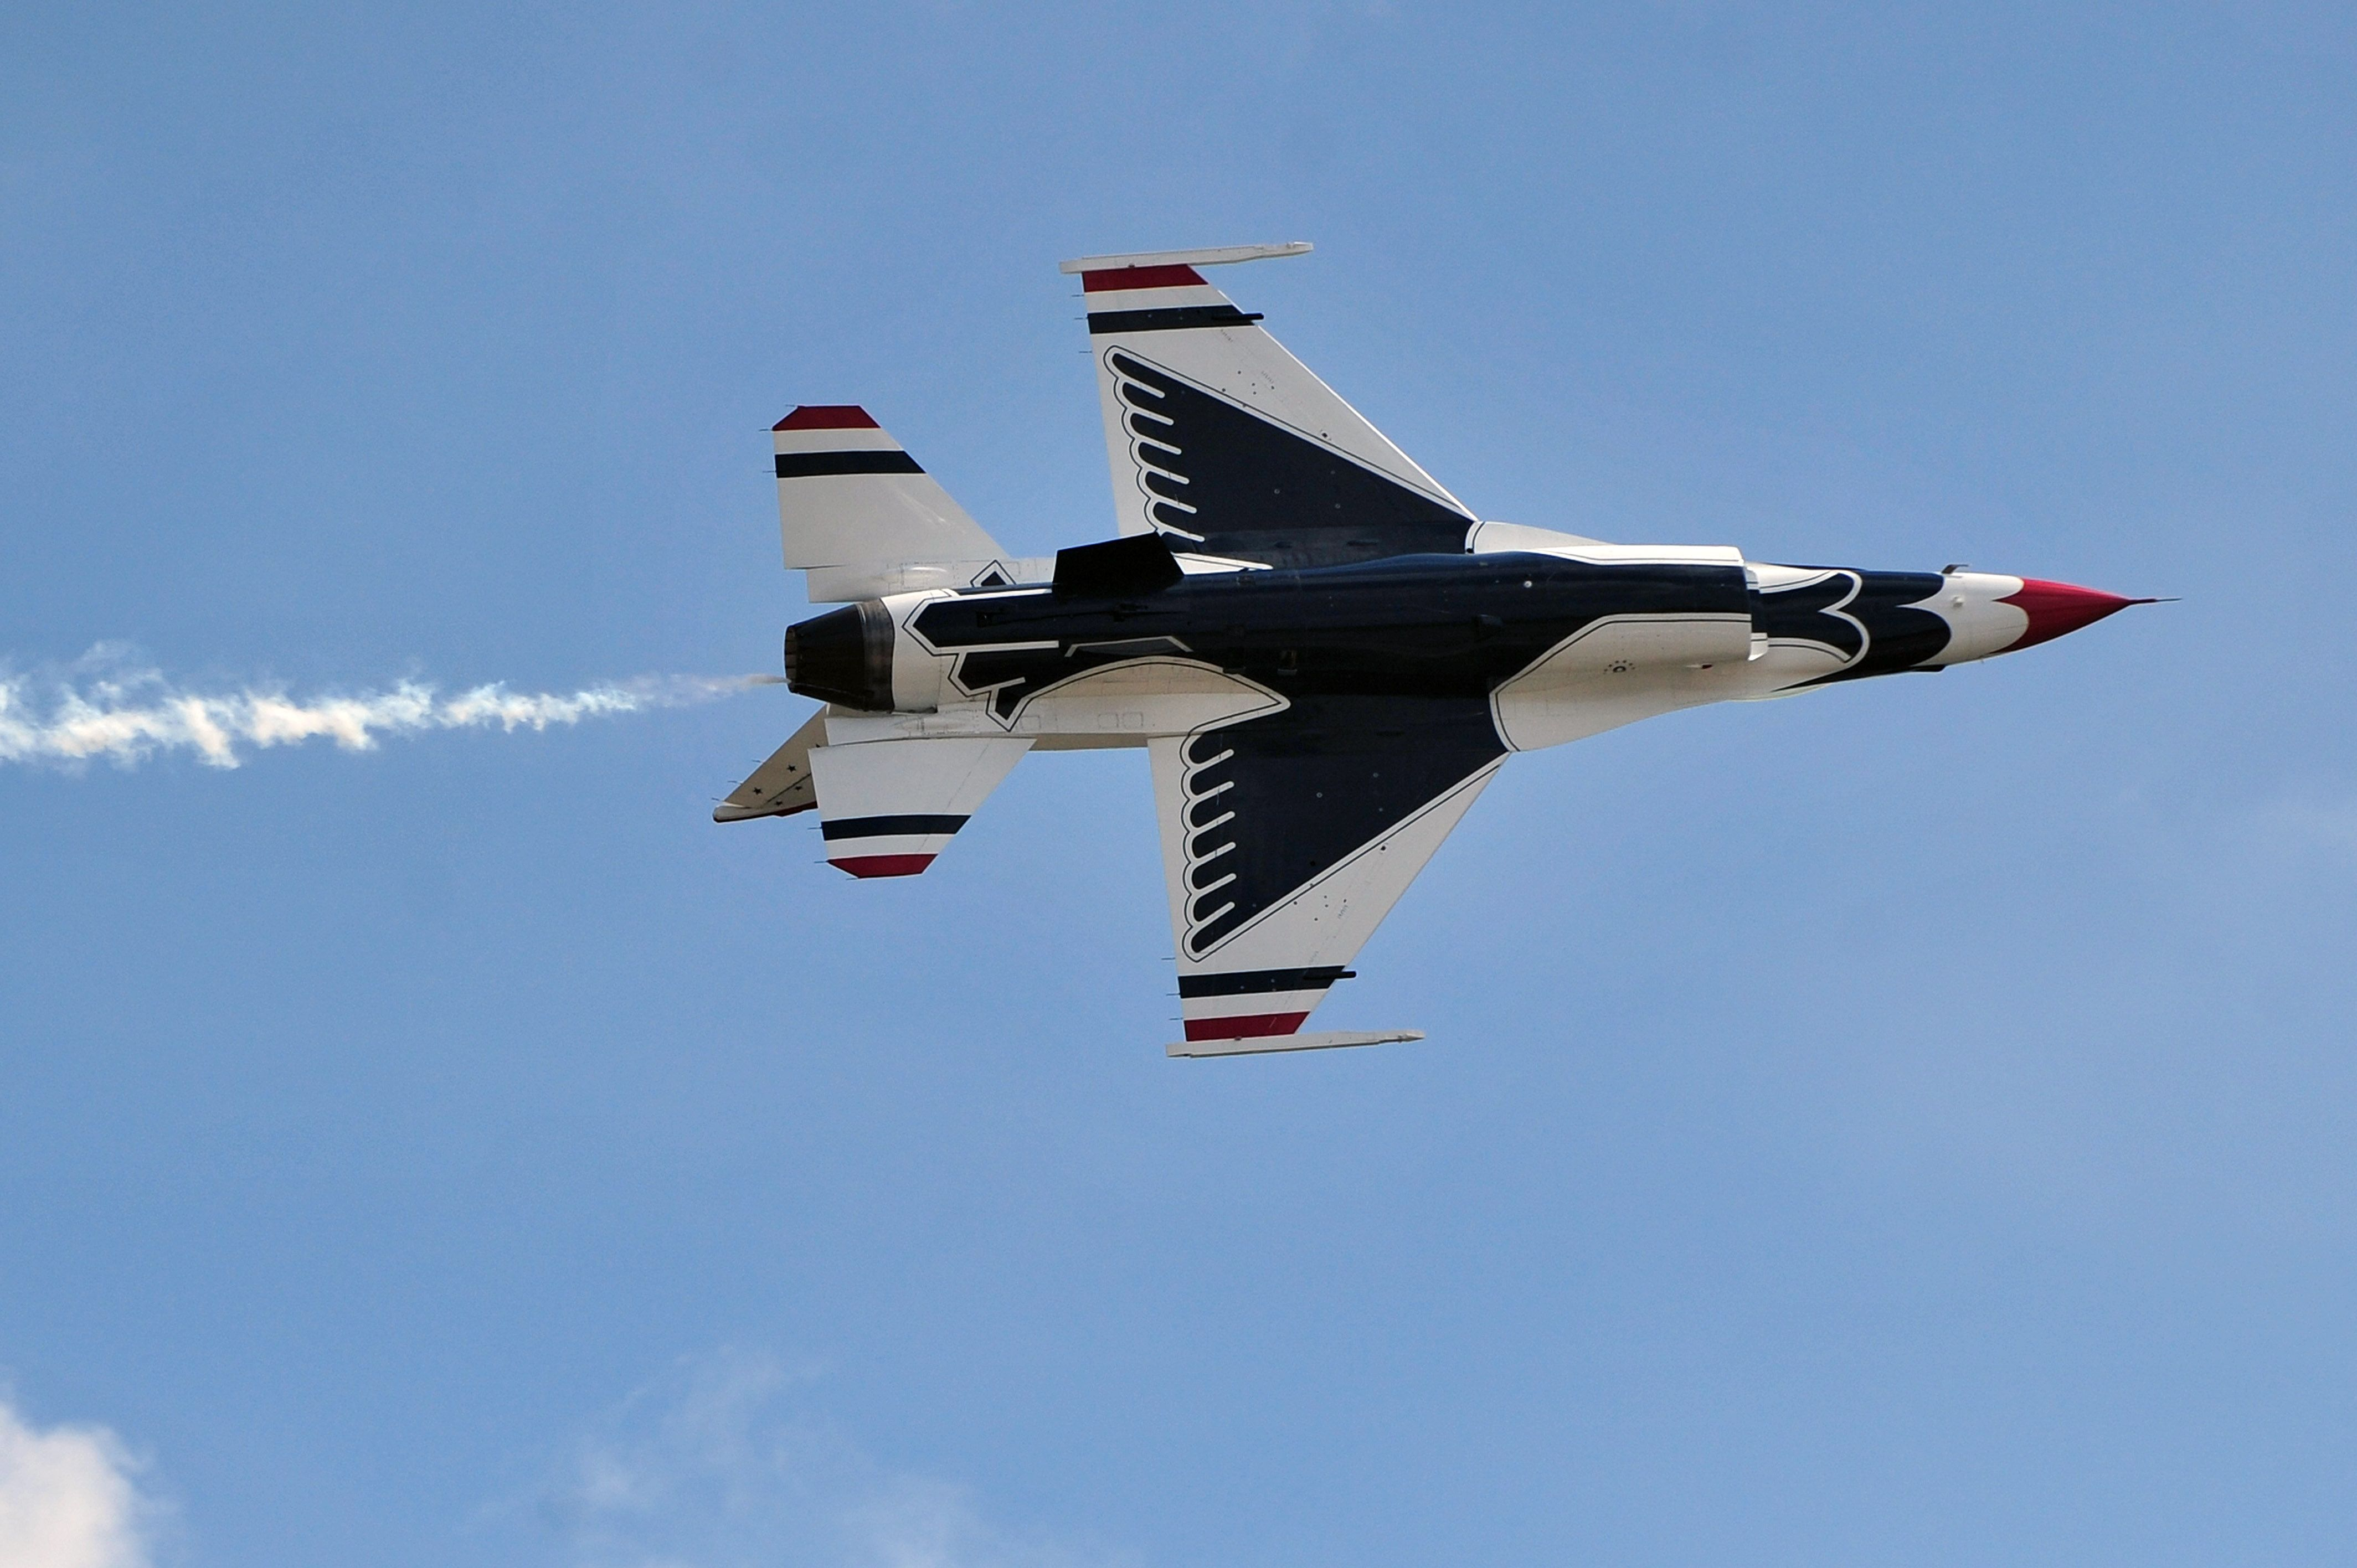 A member of the U.S. Air Force Thunderbirds aerial